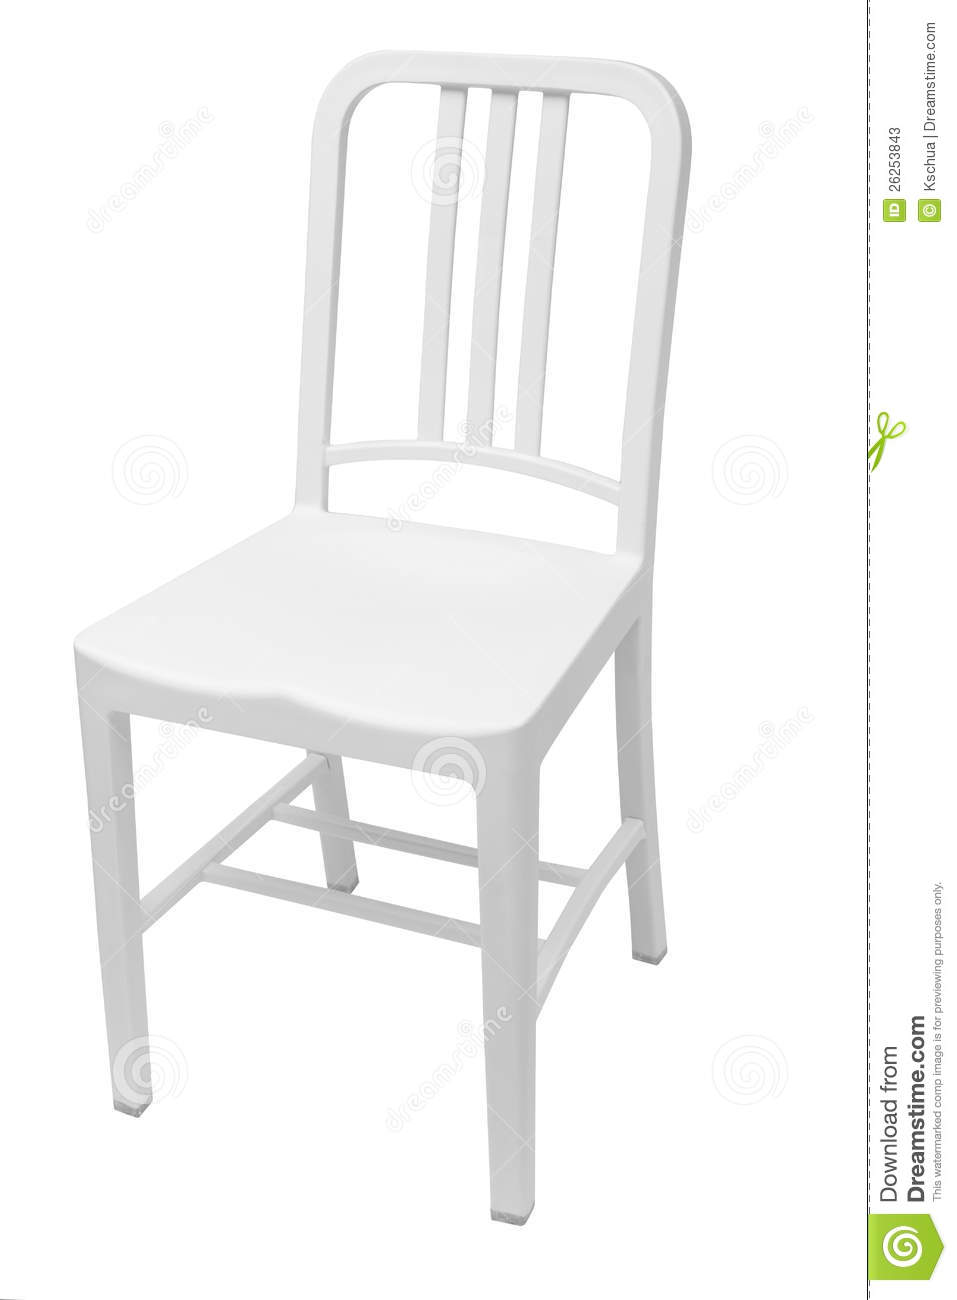 White plastic dining chair stock photos image 26253843 for White plastic dining chair